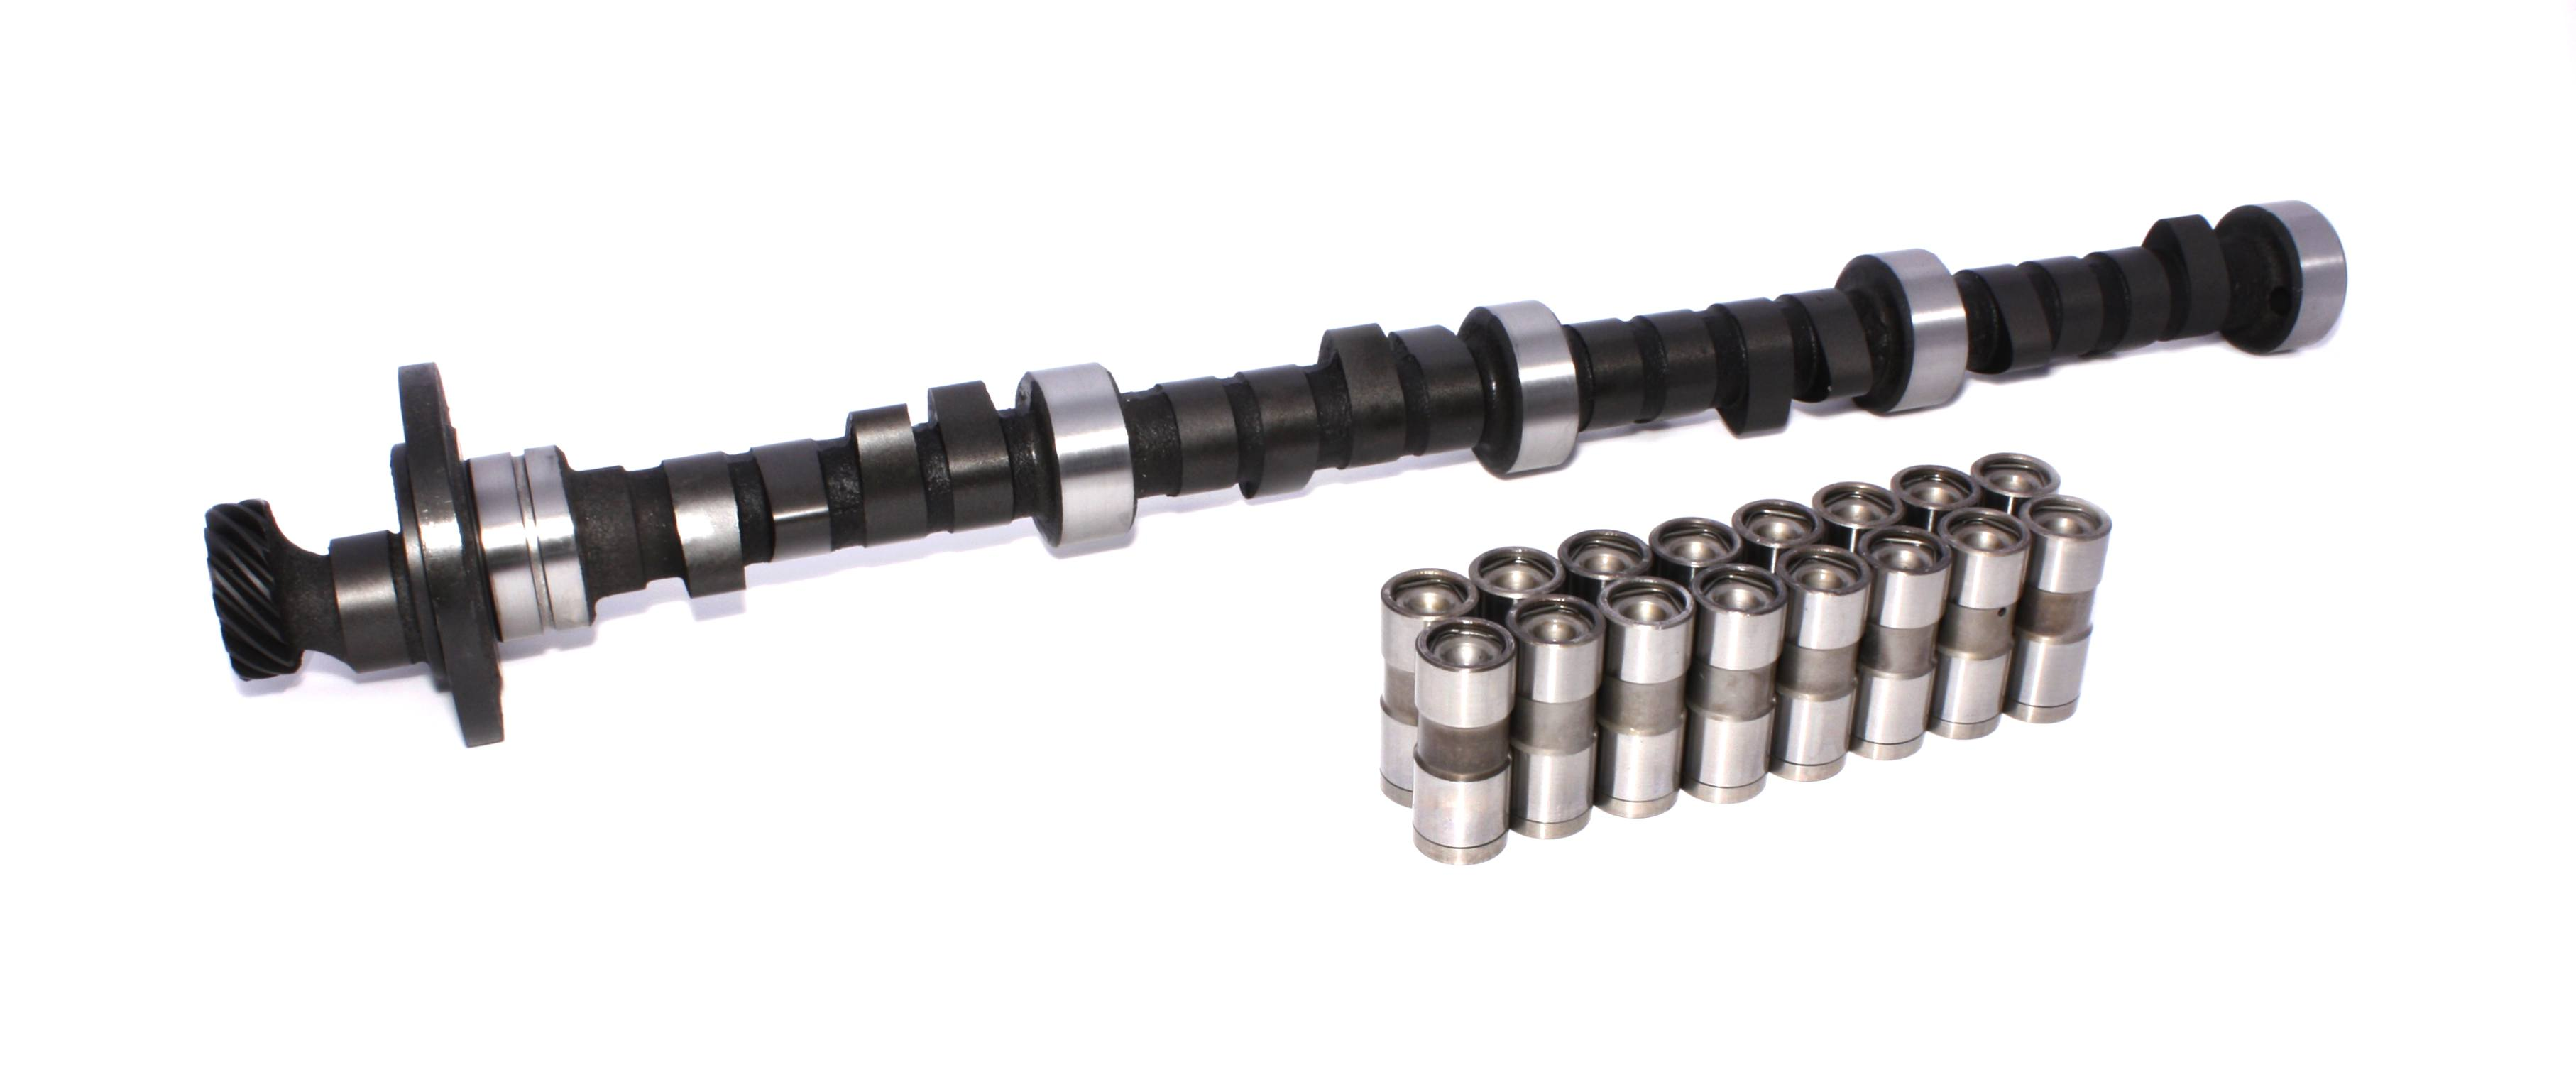 Comp Cams Cl96 602 5 Engine Camshaft And Lifter Kit